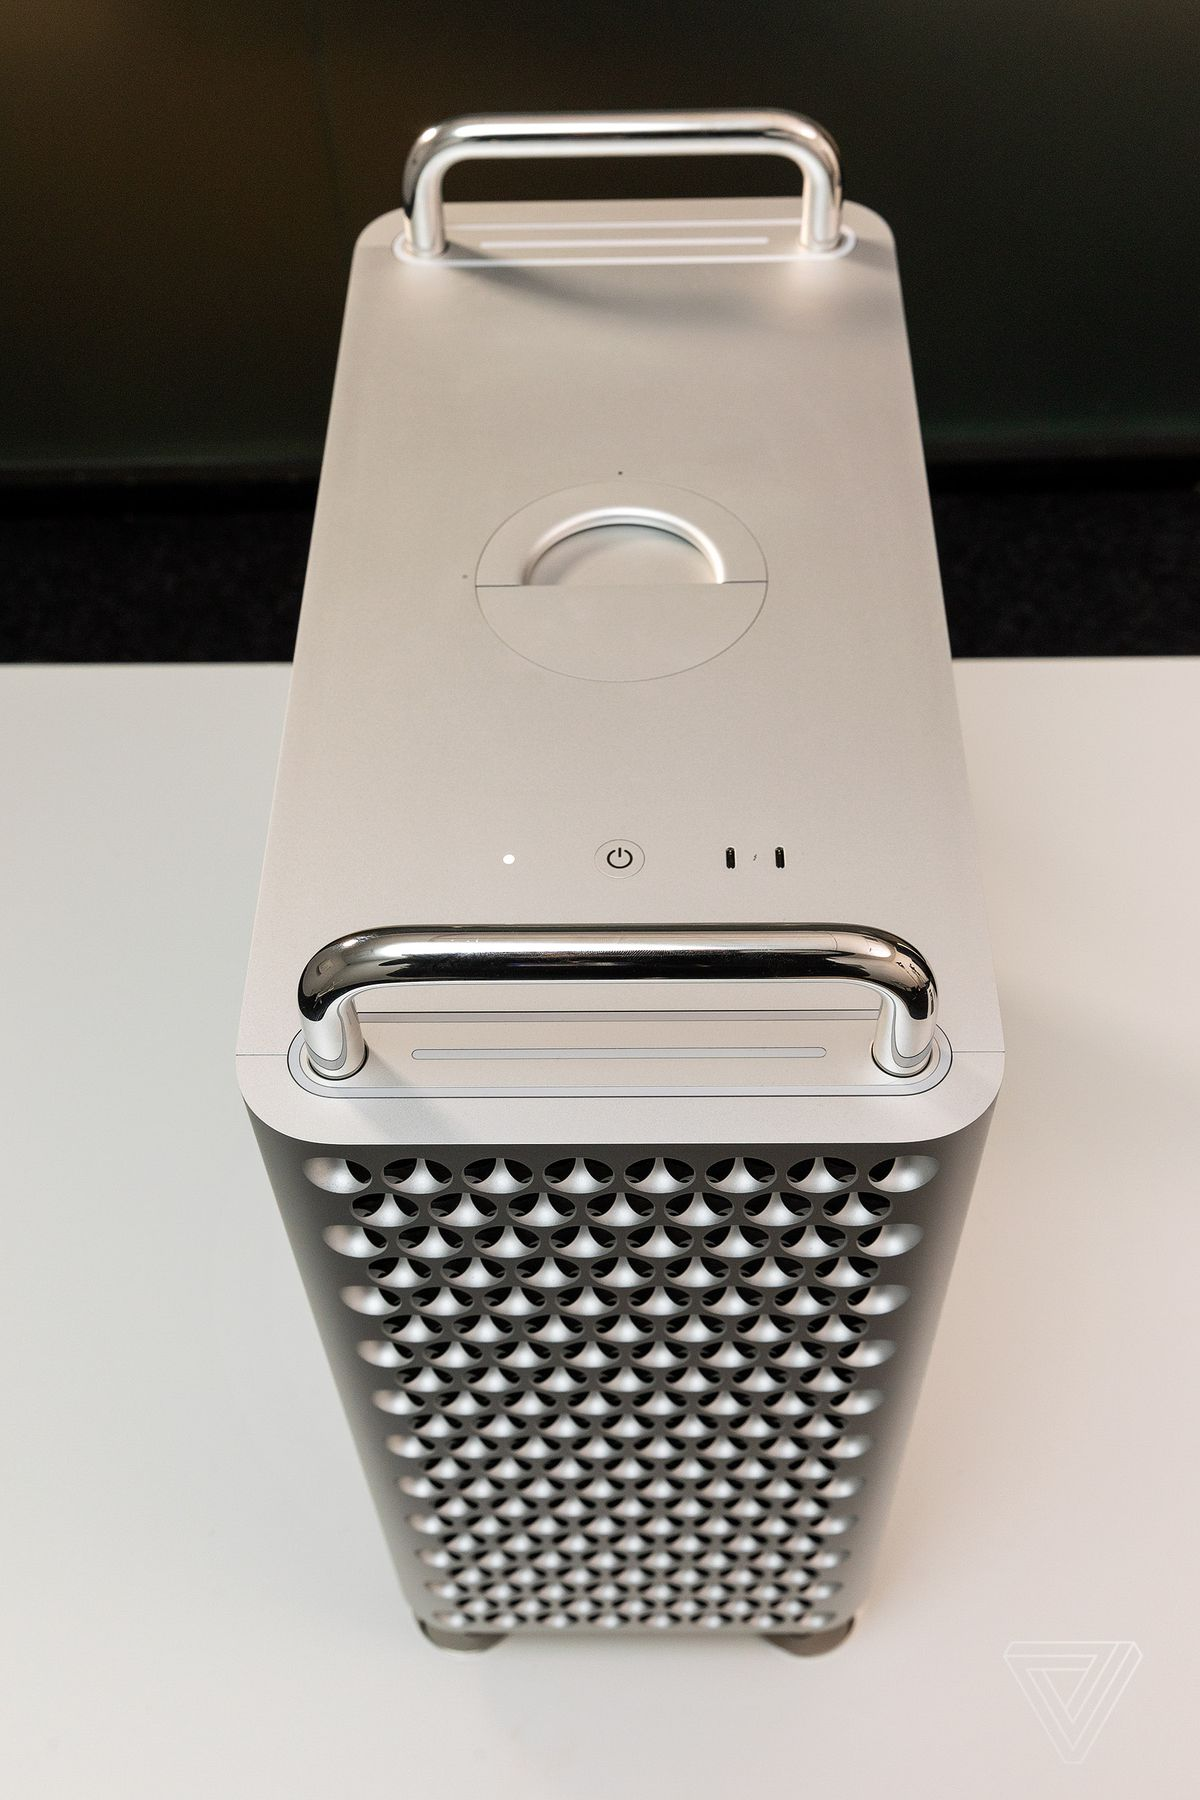 Top of the Mac Pro